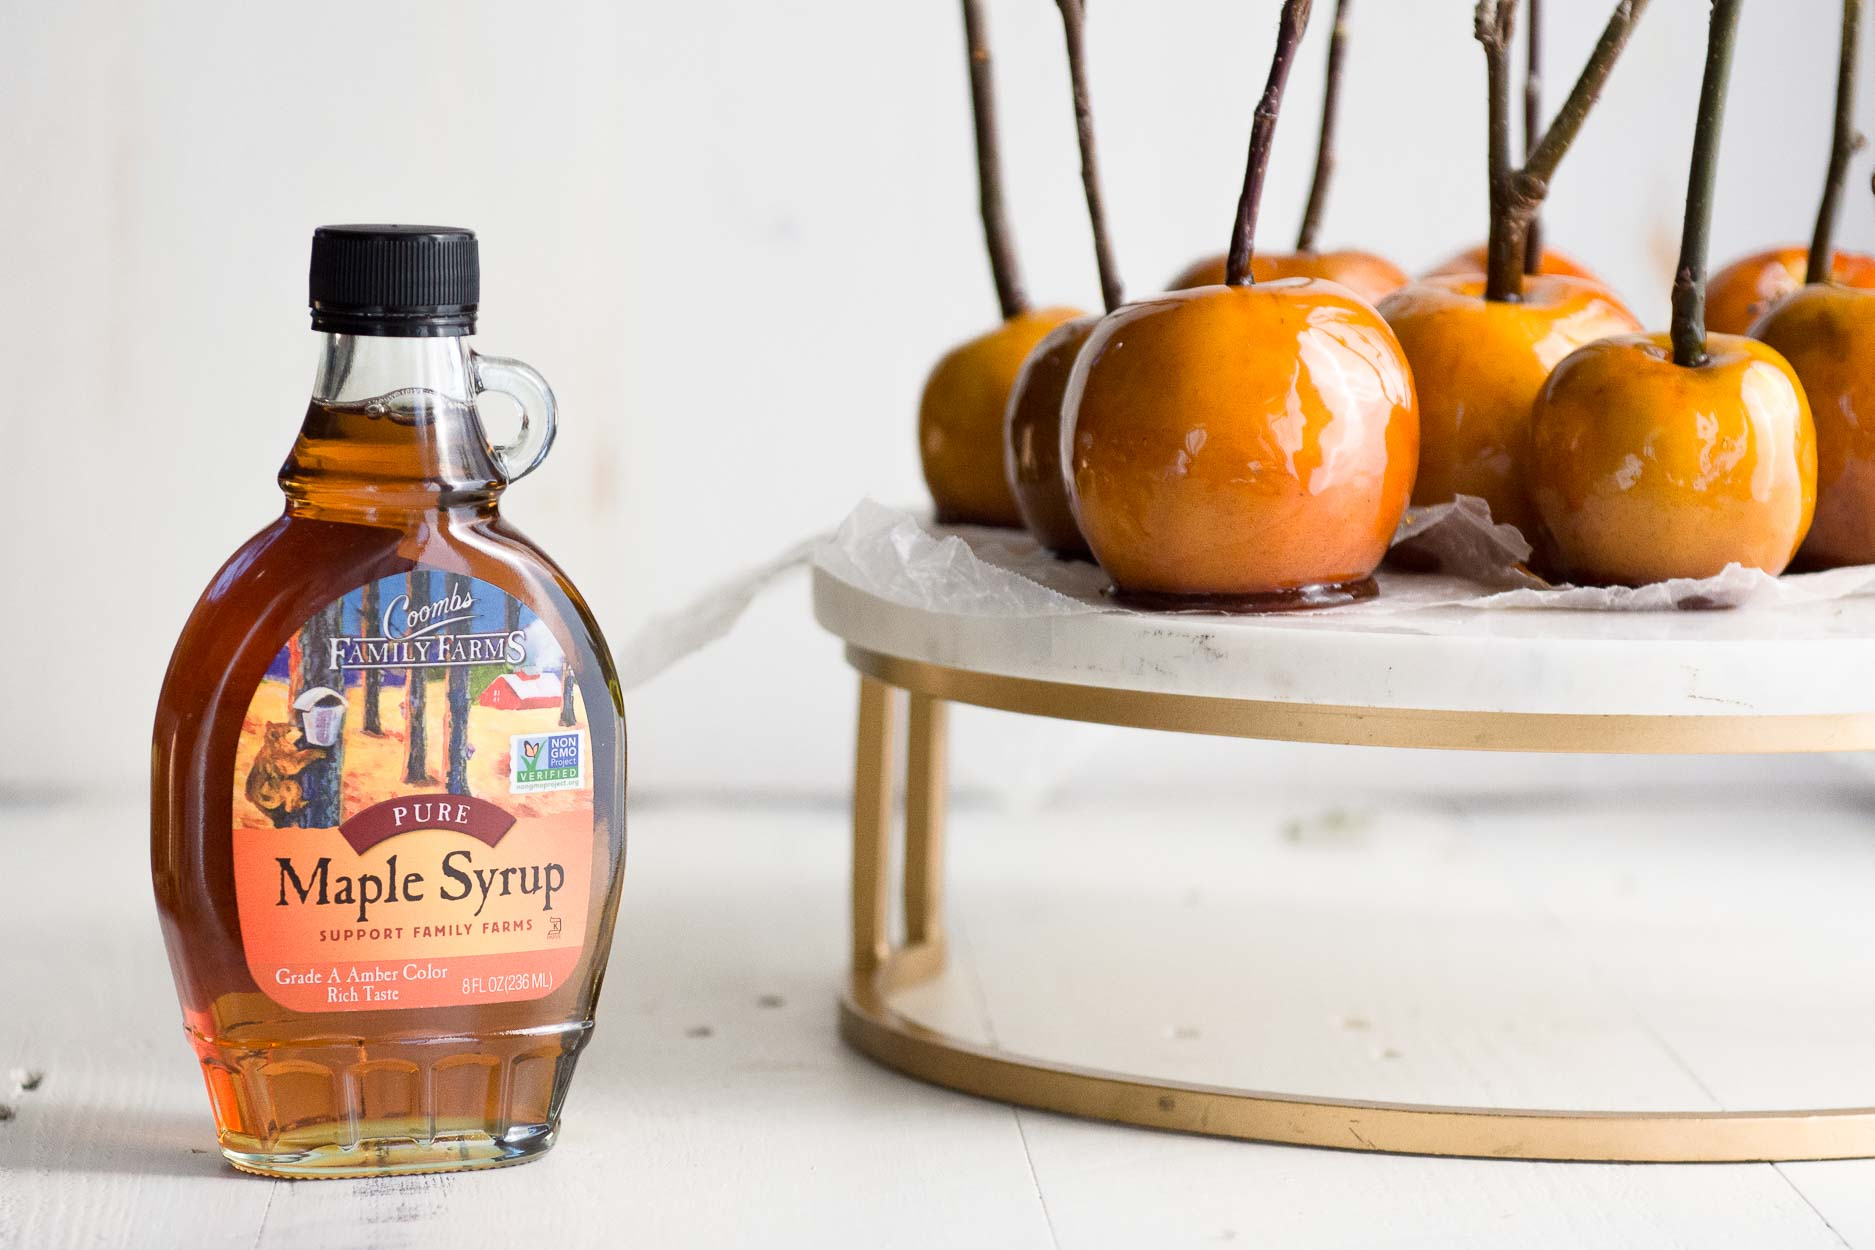 Maple syrup with Maple Candied Apples